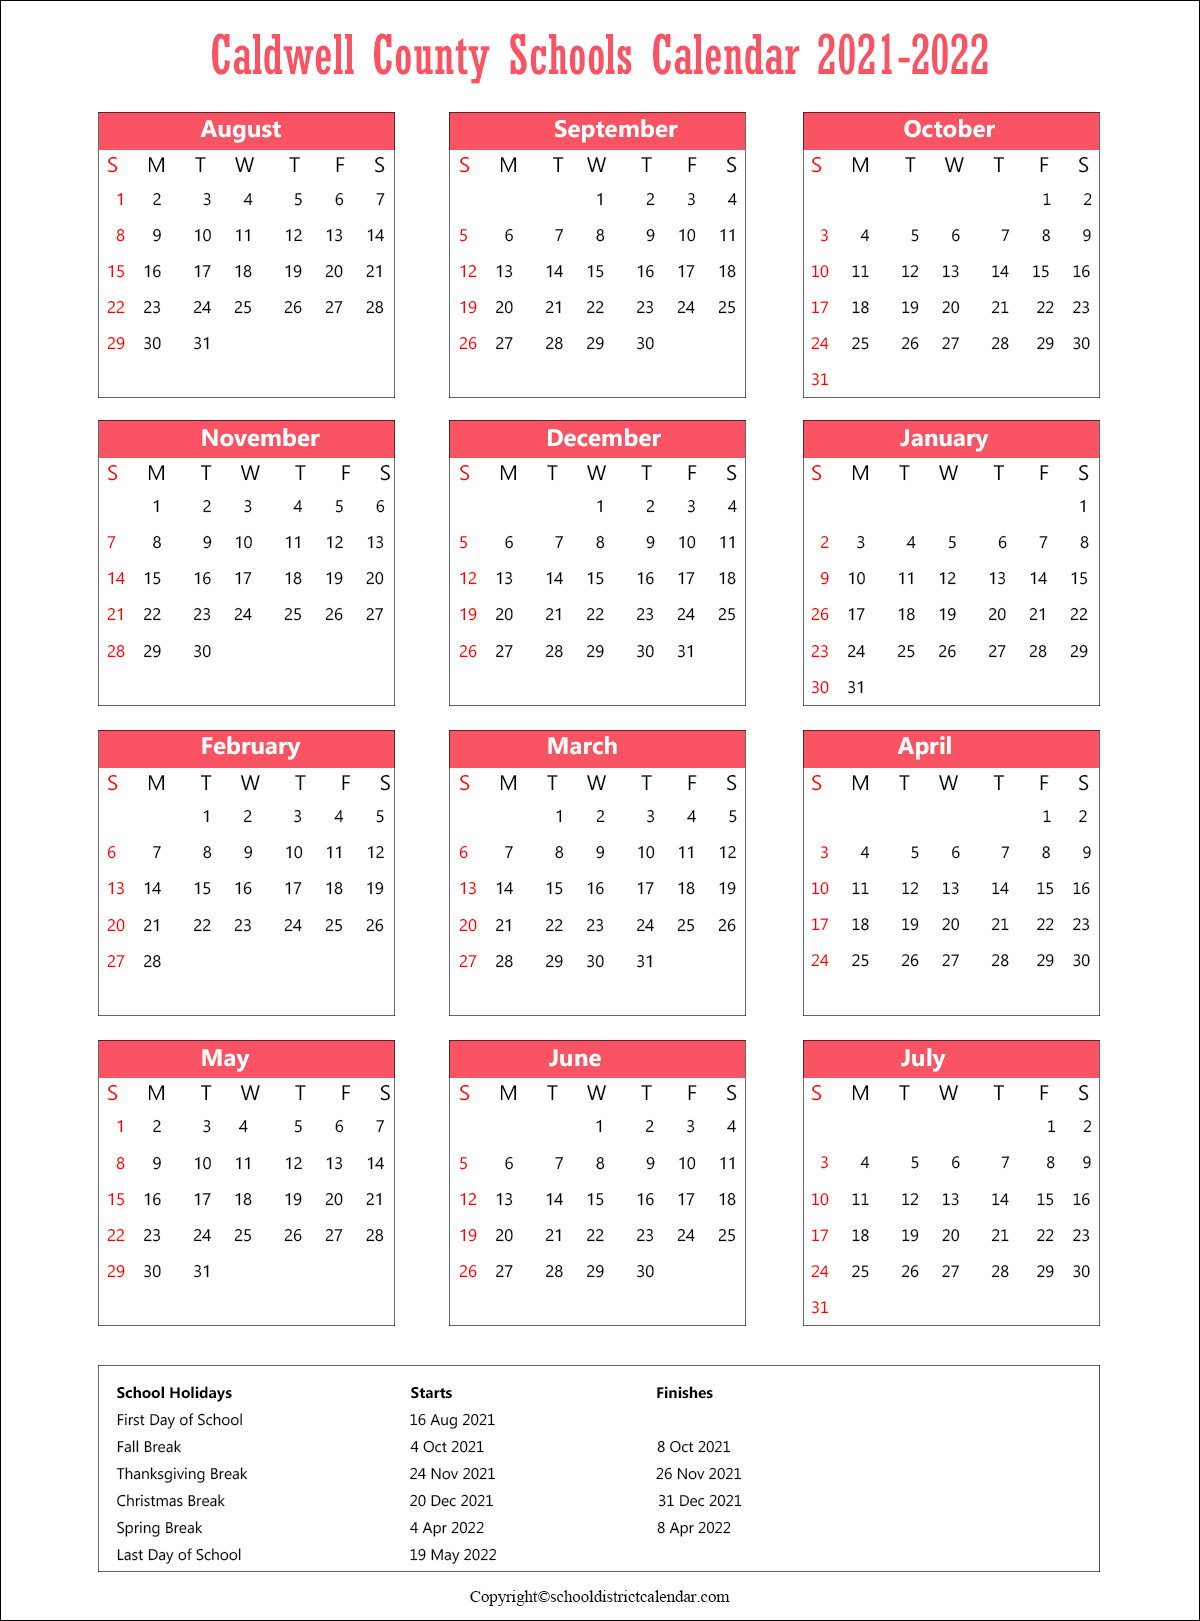 Caldwell County Schools Calendar, North Carolina Holidays 2021